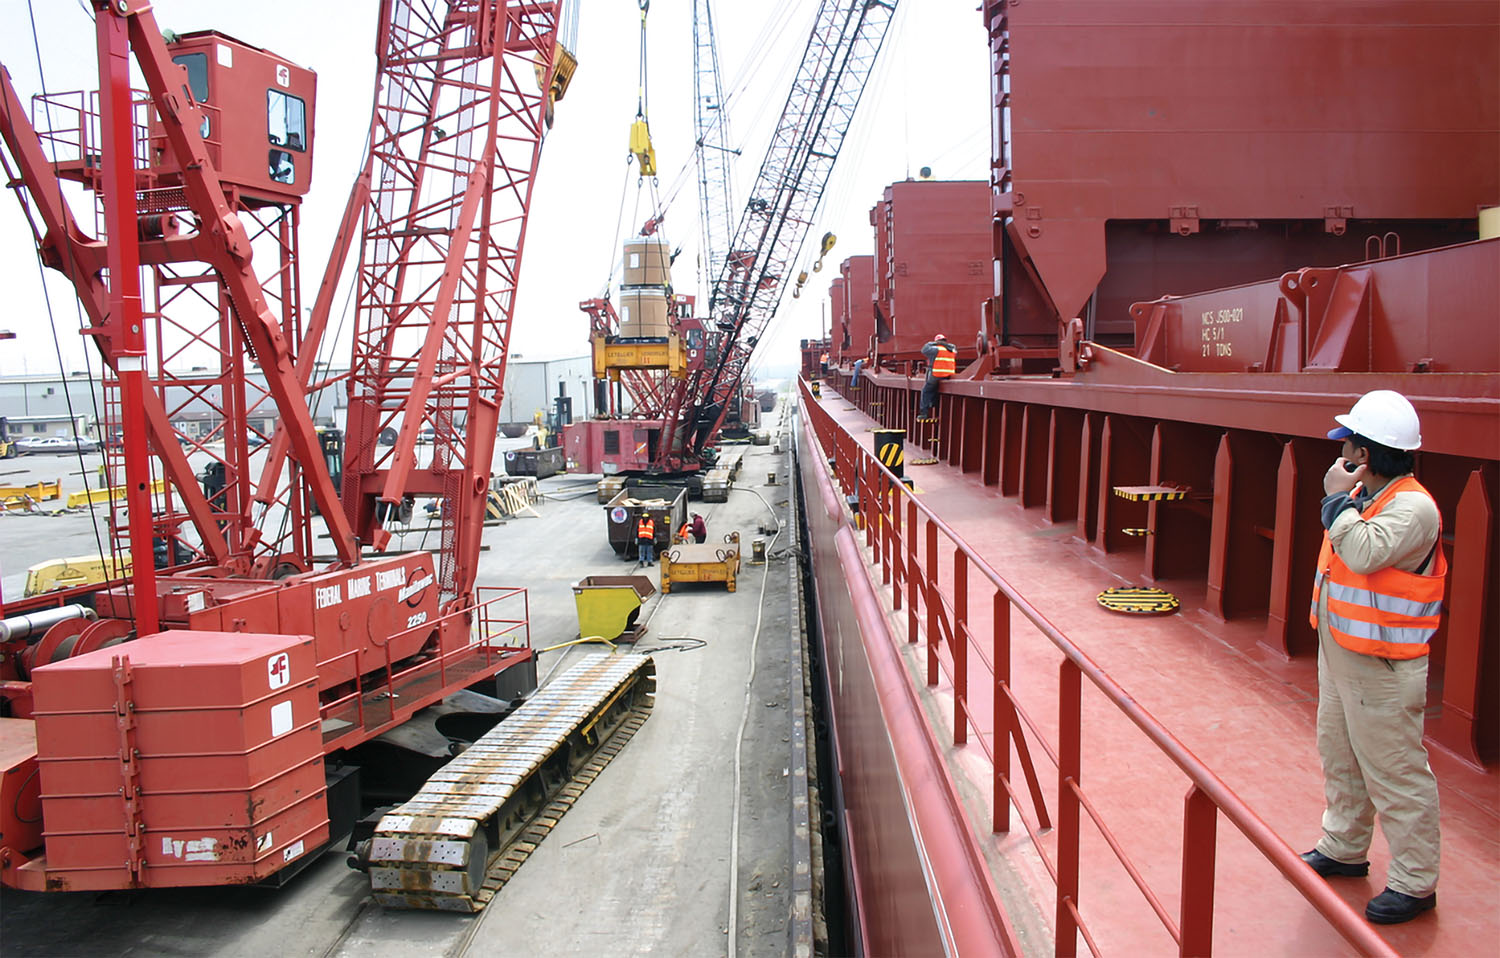 FMT has been handling cargoes in the Great Lakes and St. Lawrence River and along the East and Gulf coasts since 1960. (Photo courtesy of the Ports of Indiana)